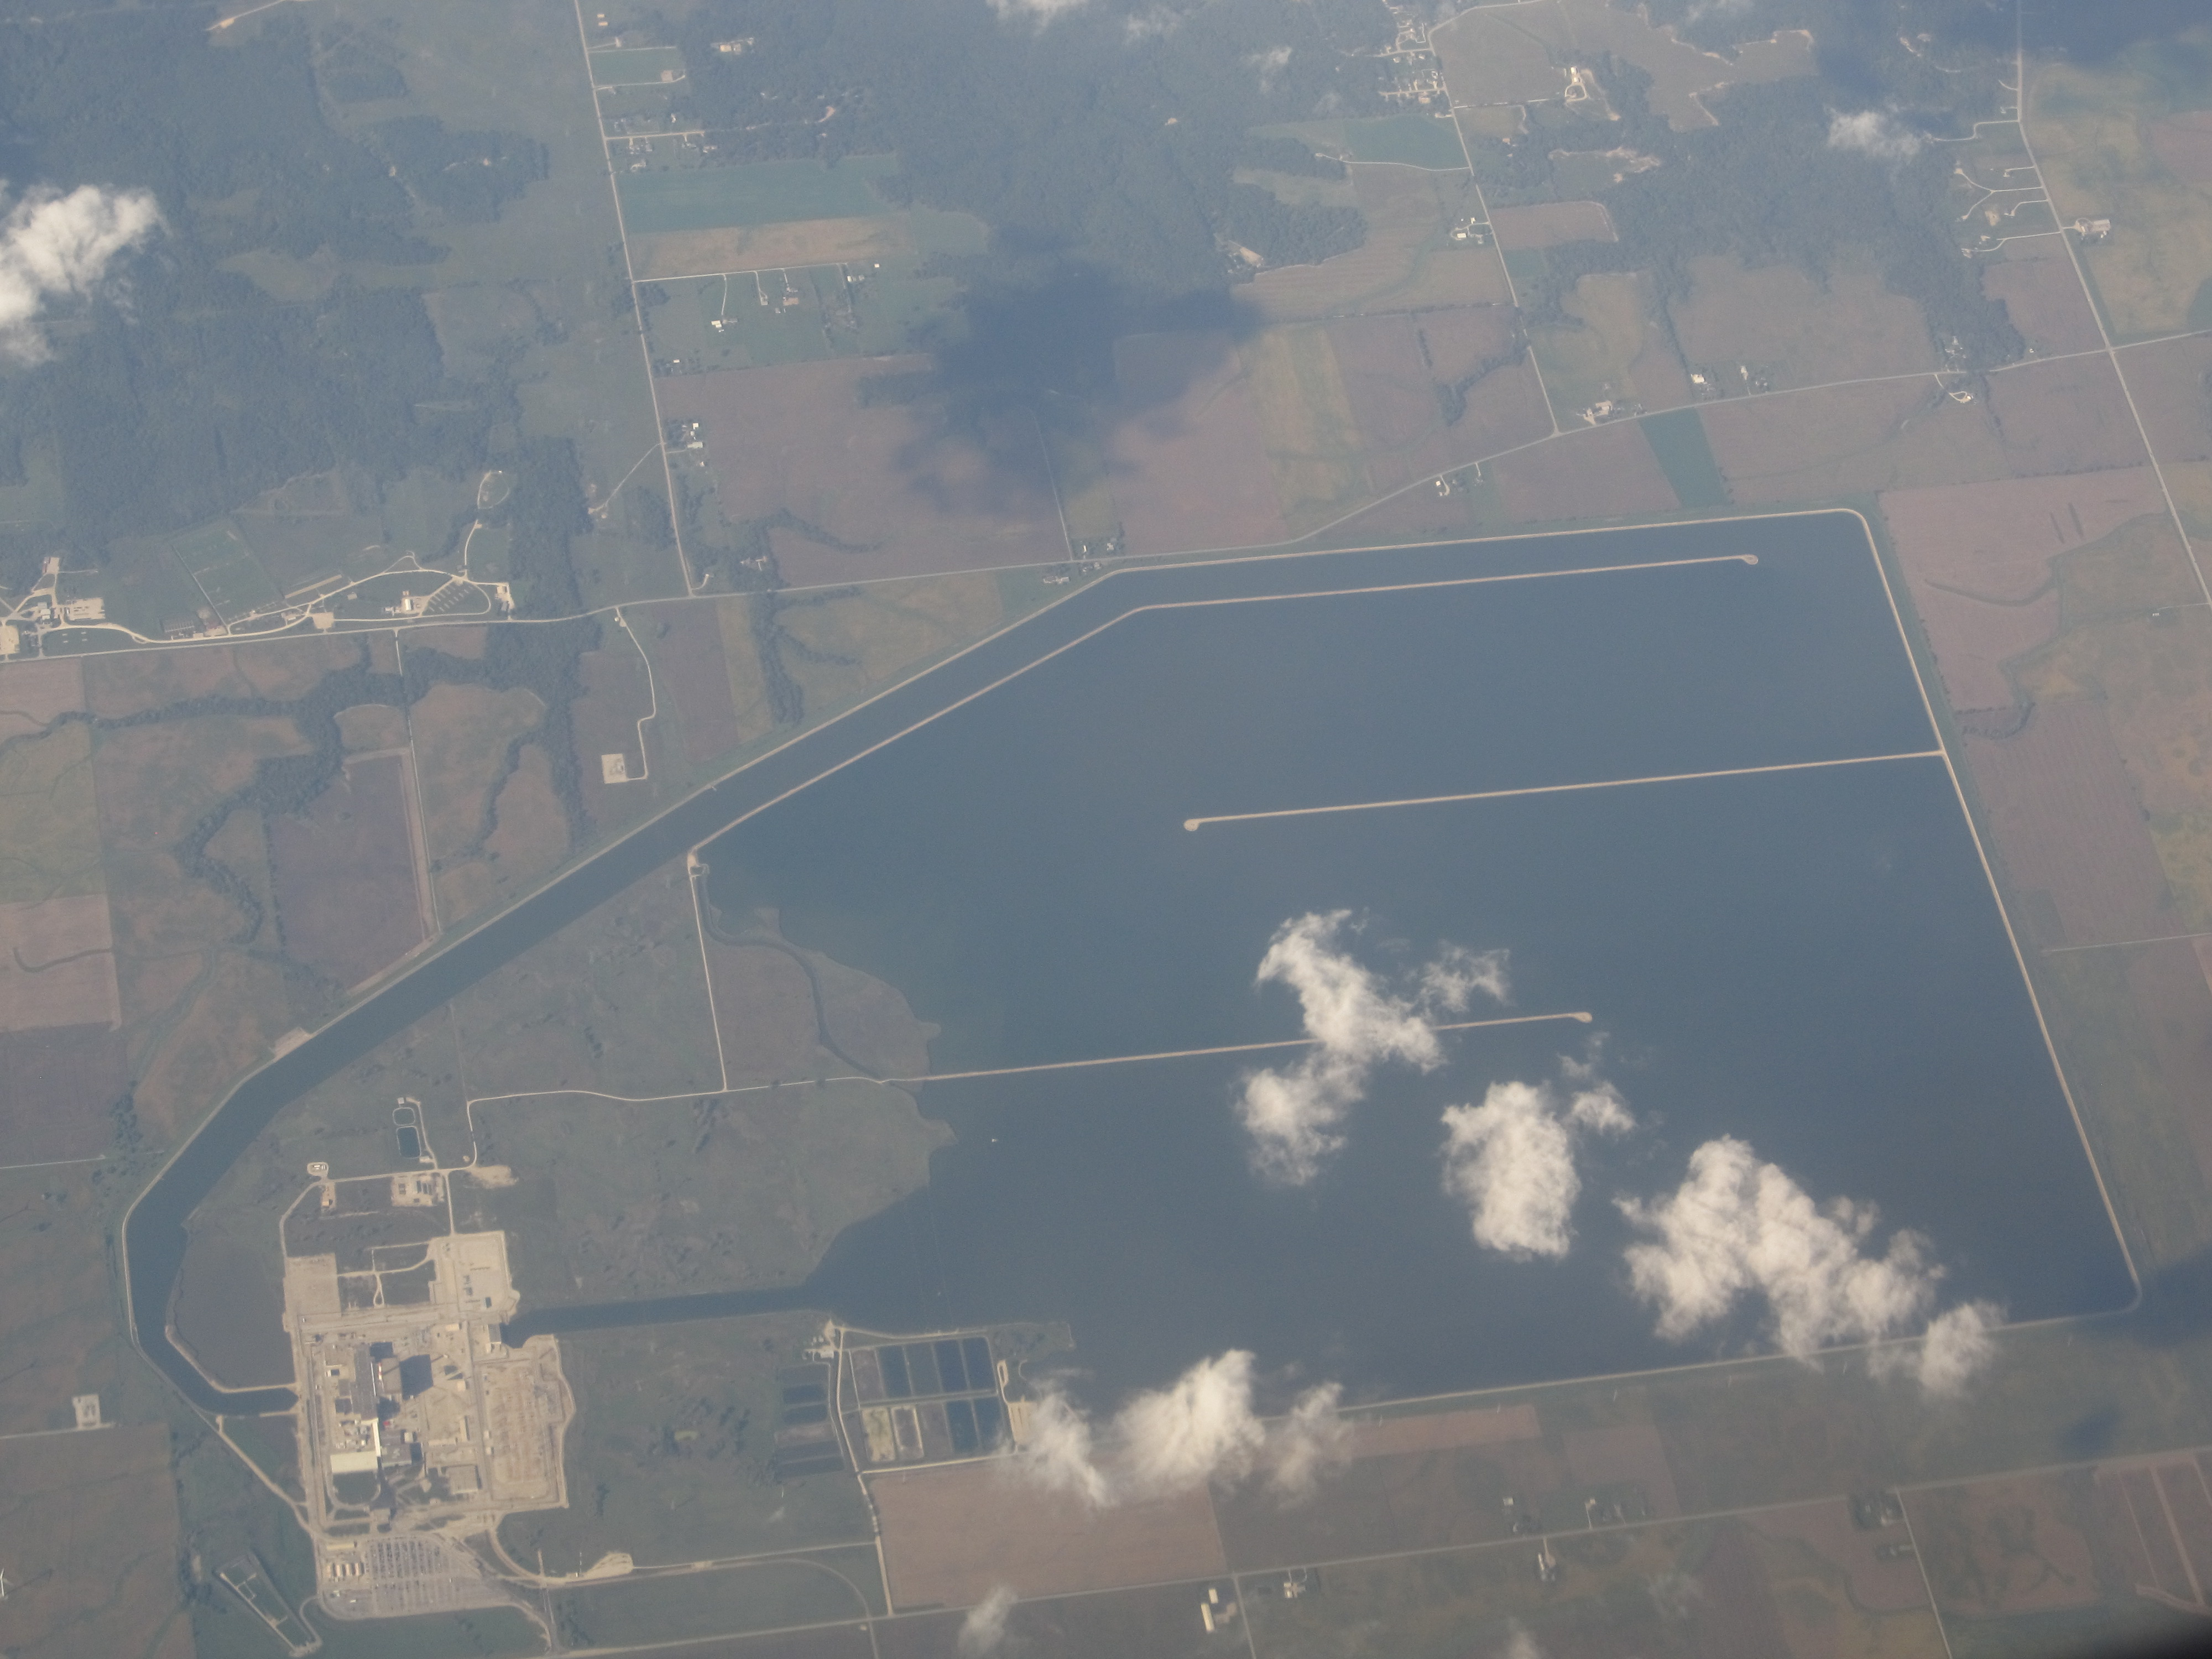 LaSalle County Nuclear Generating Station - Wikipedia